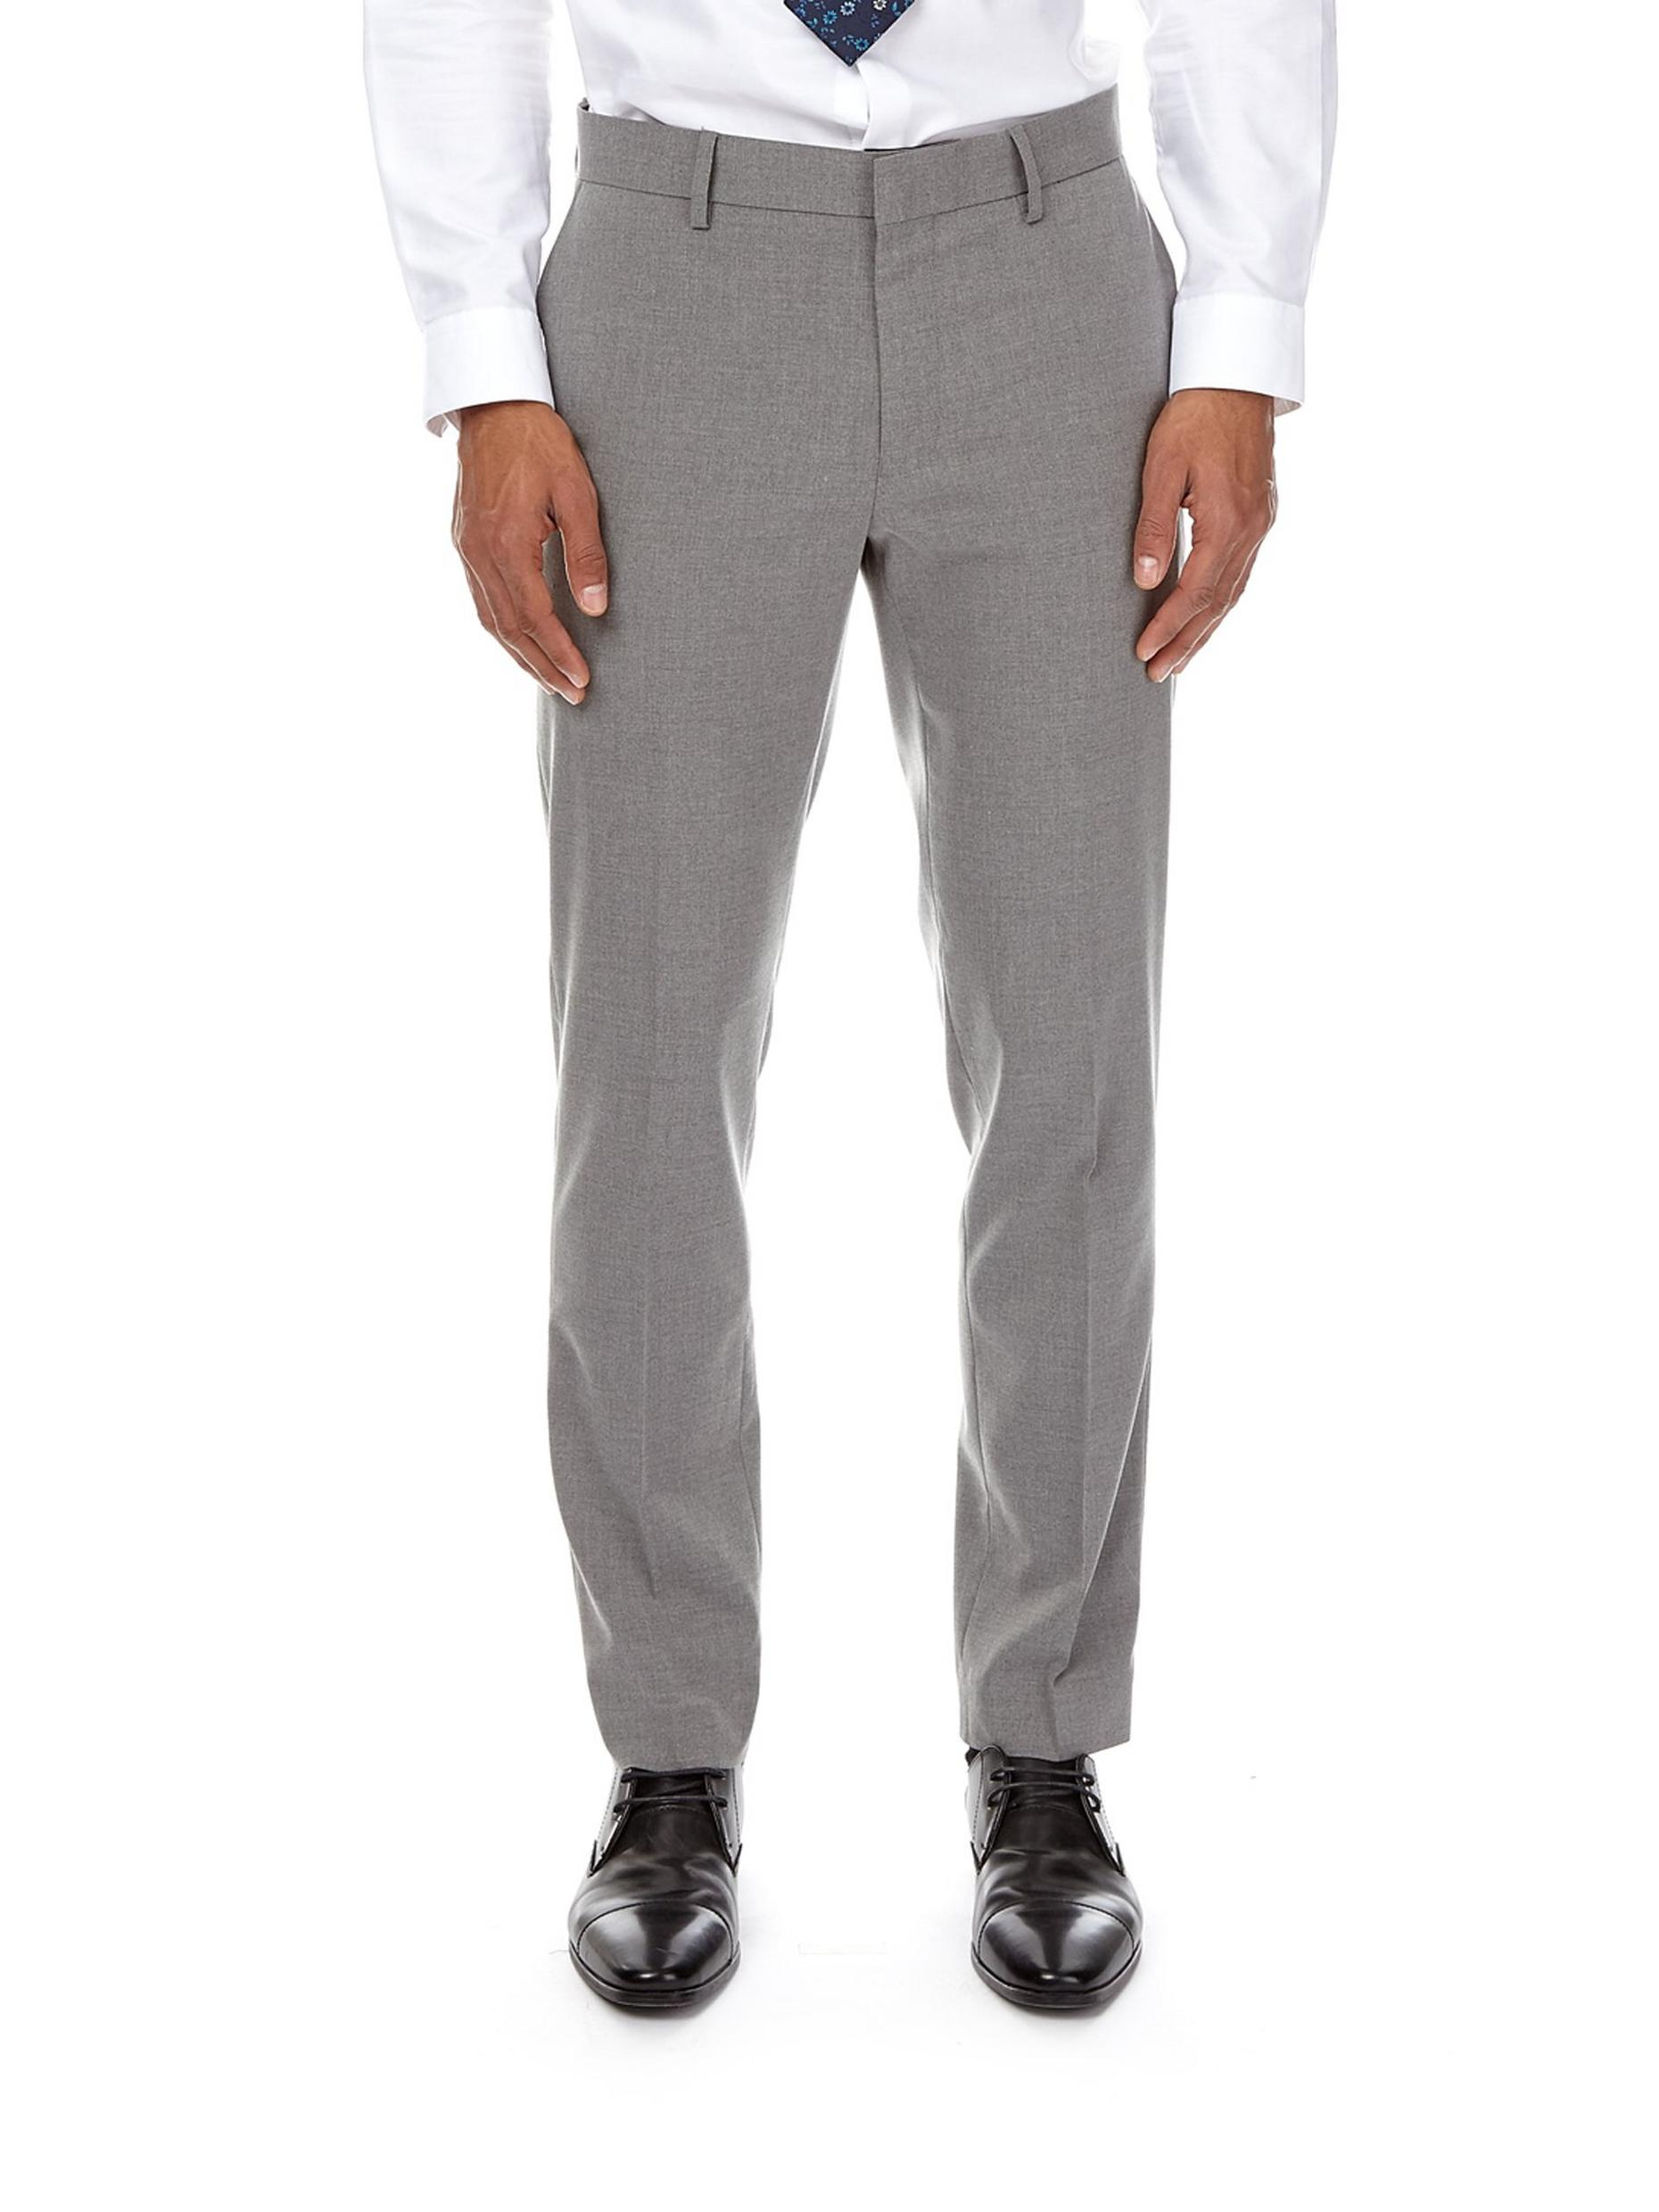 Essential Light Grey Skinny Fit Suit Trousers